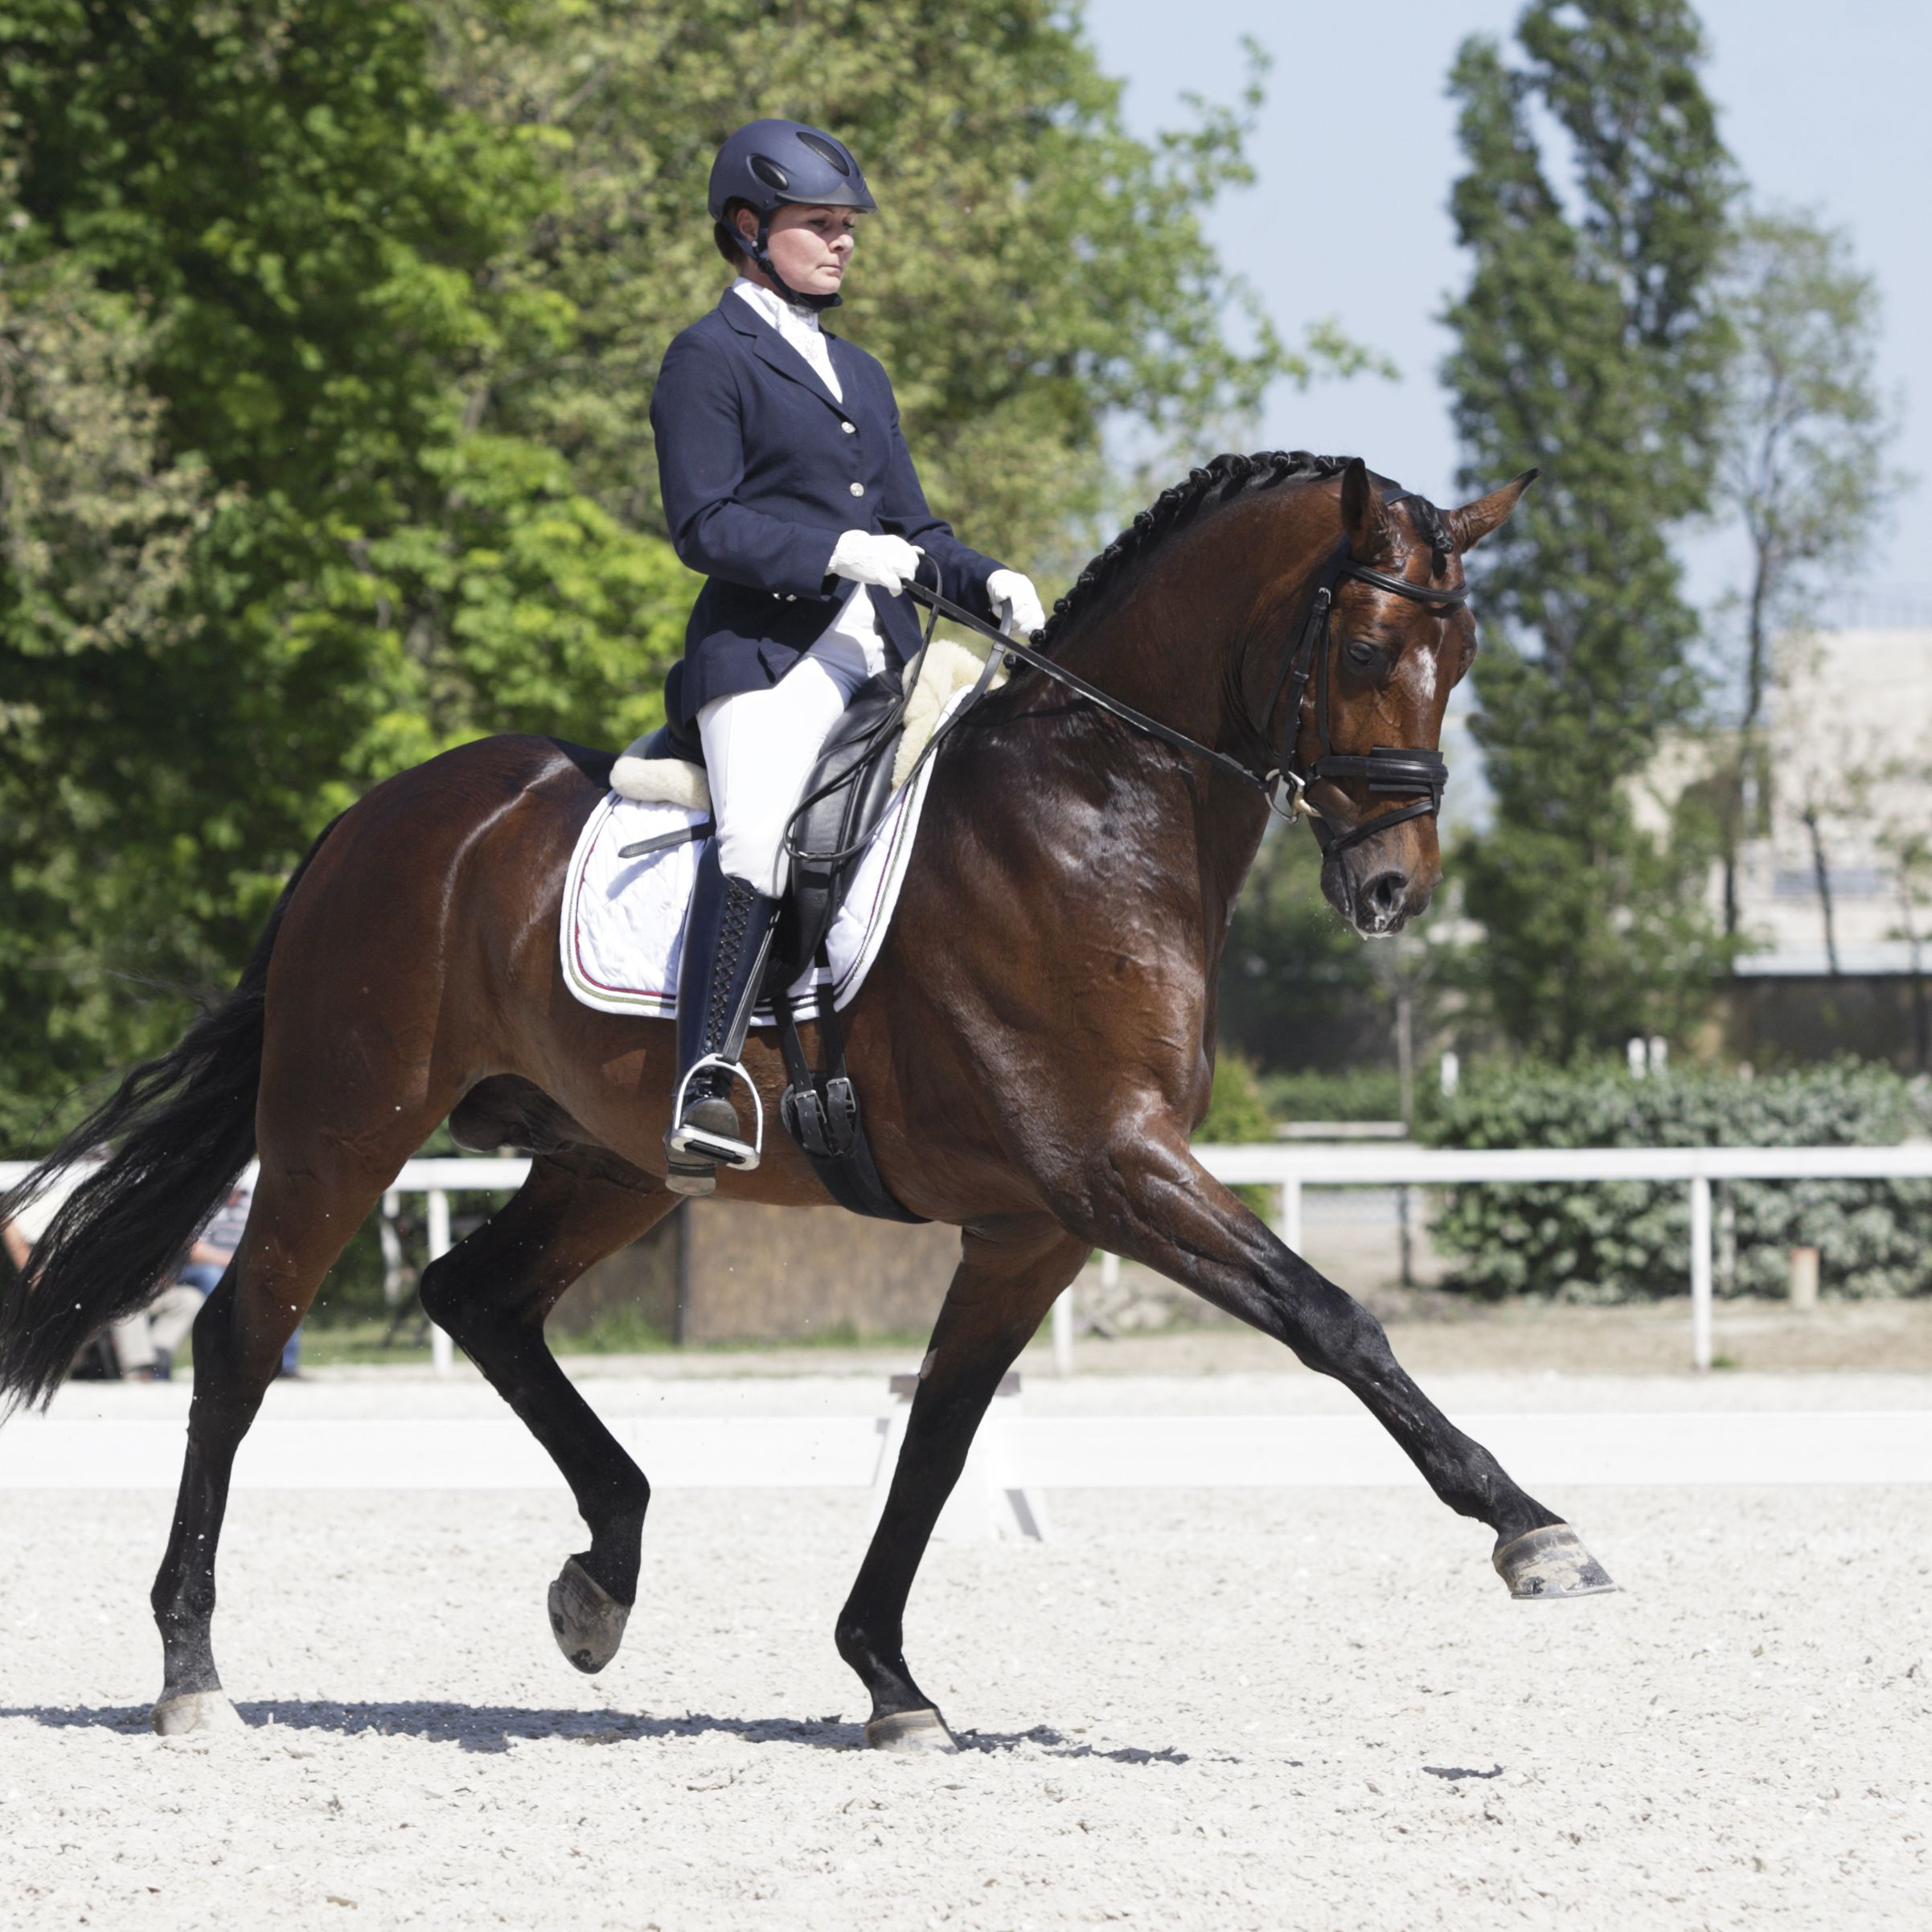 An Introduction To The Sport Of Dressage Riding